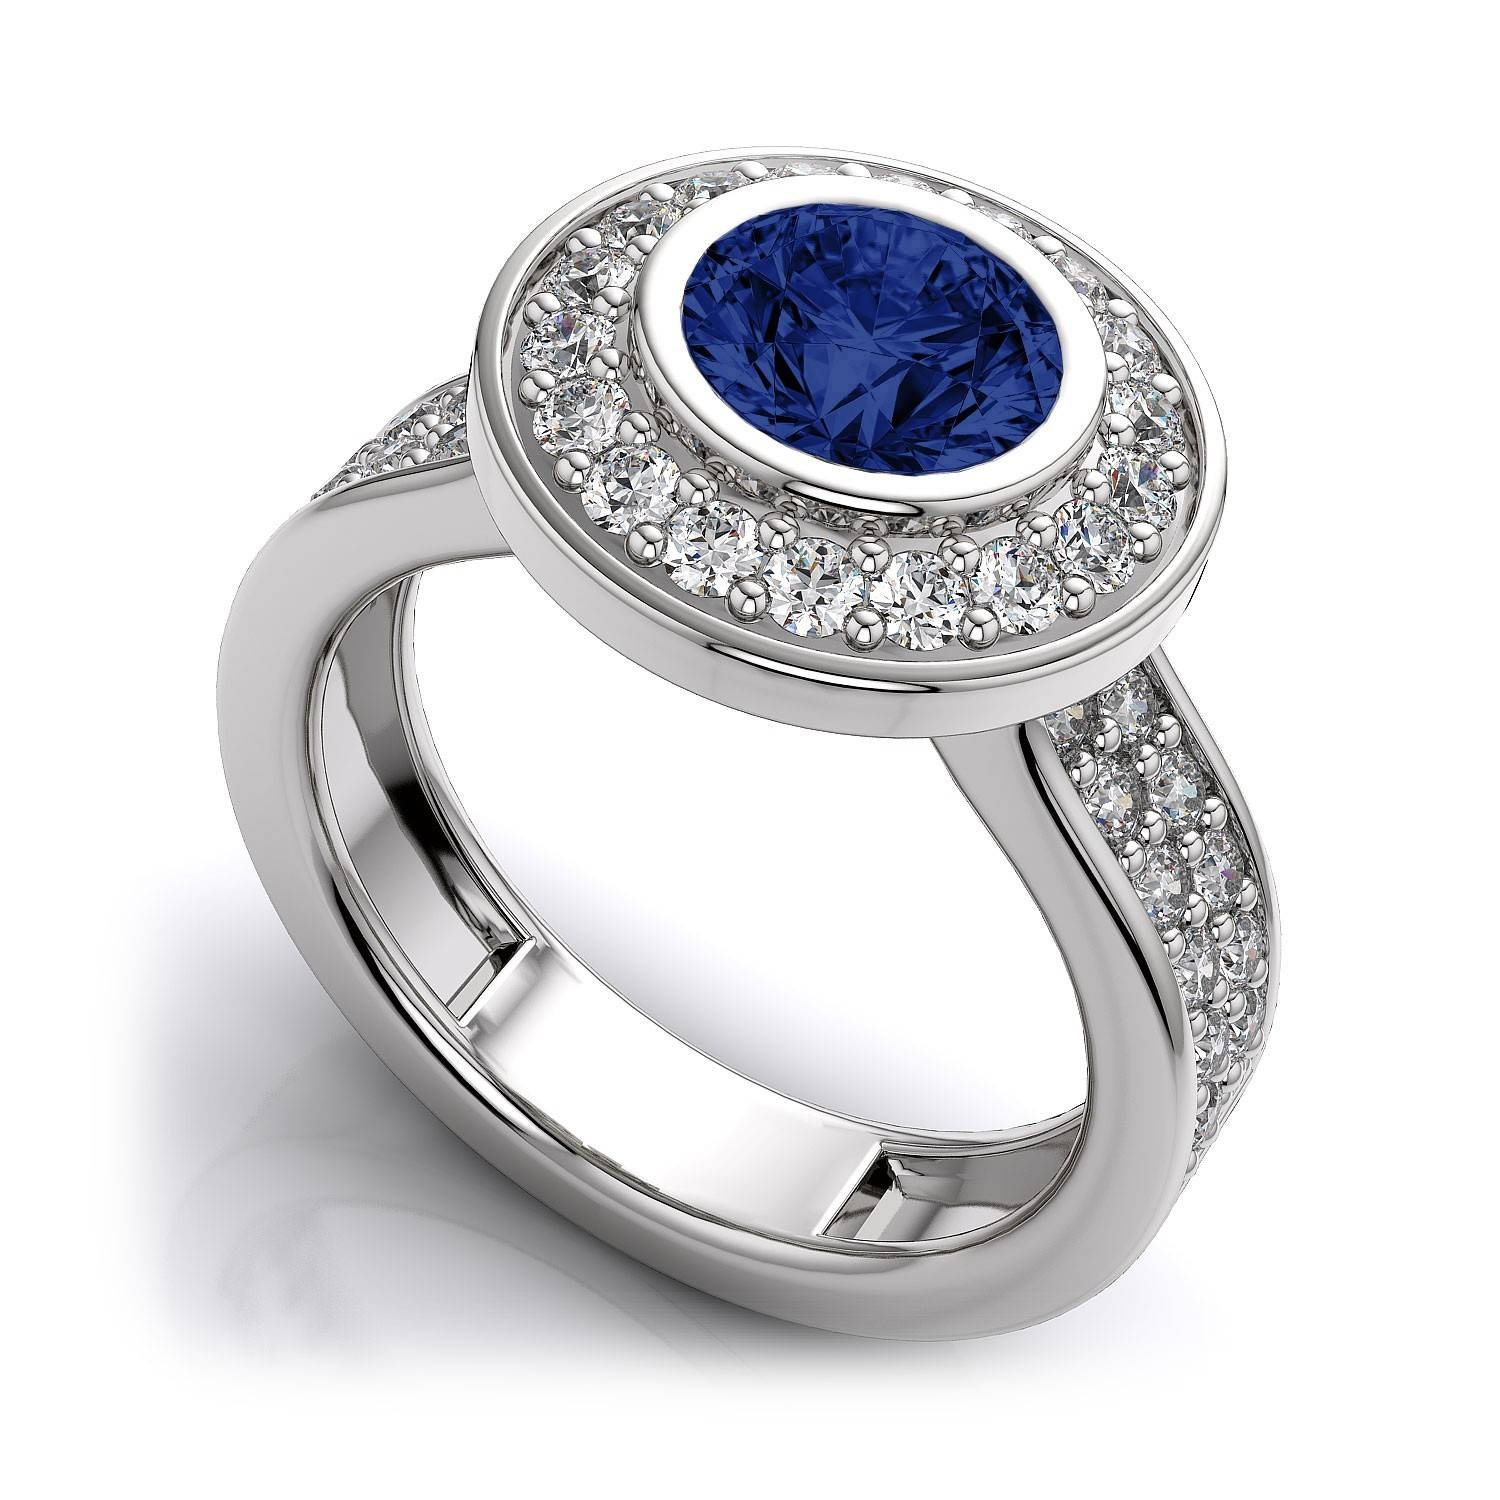 Ring Lab Created Diamond Wedding Ring Blue Sapphire Wedding Ring Regarding Special Design Wedding Rings (View 12 of 15)